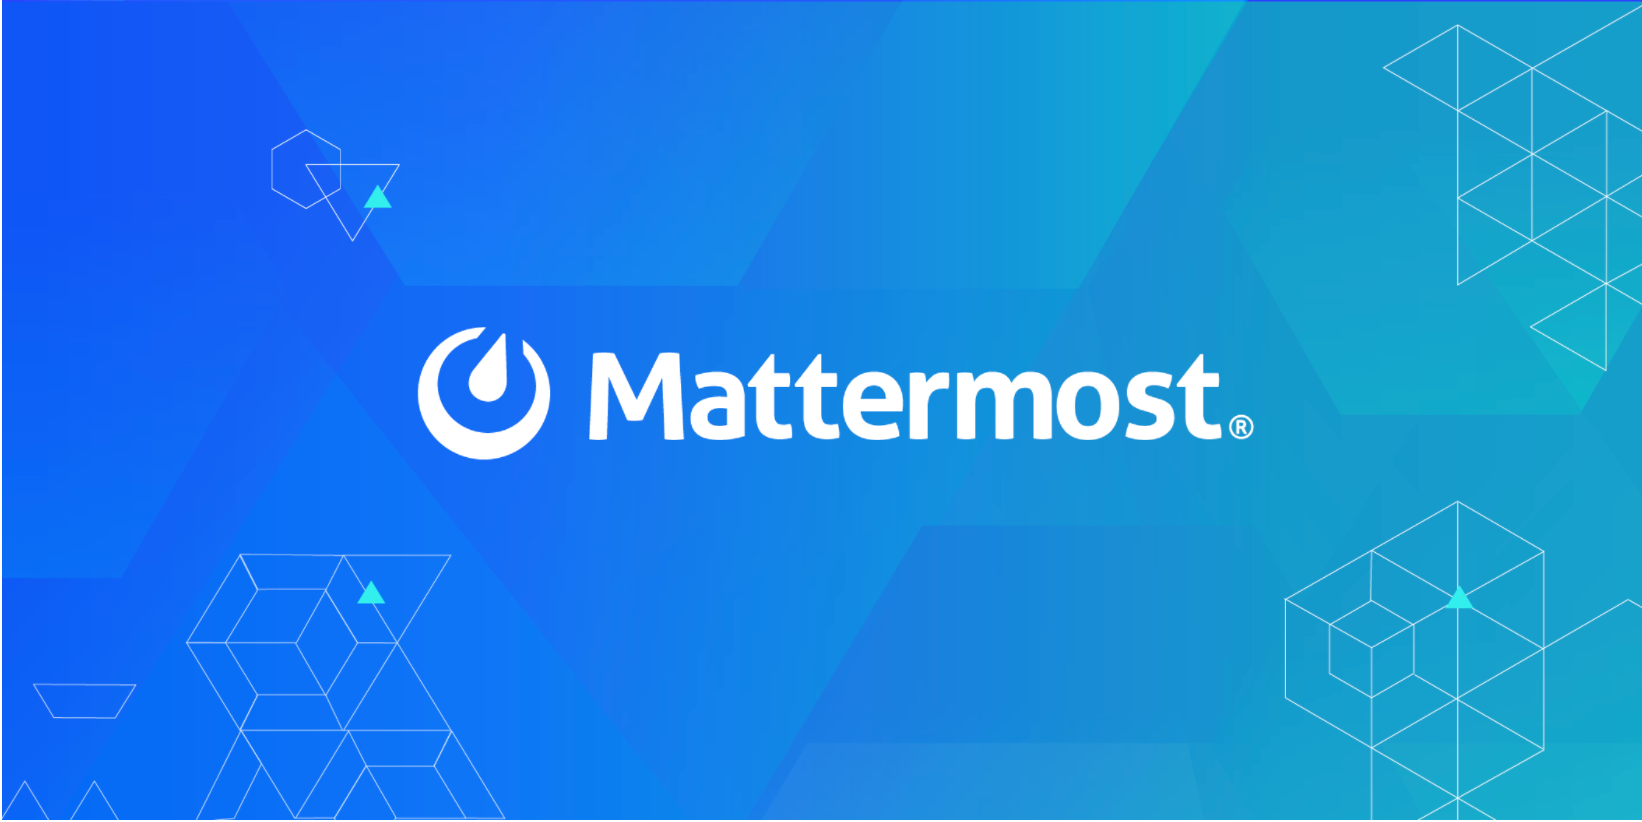 Techmeme: Mattermost, a platform that helps teams of